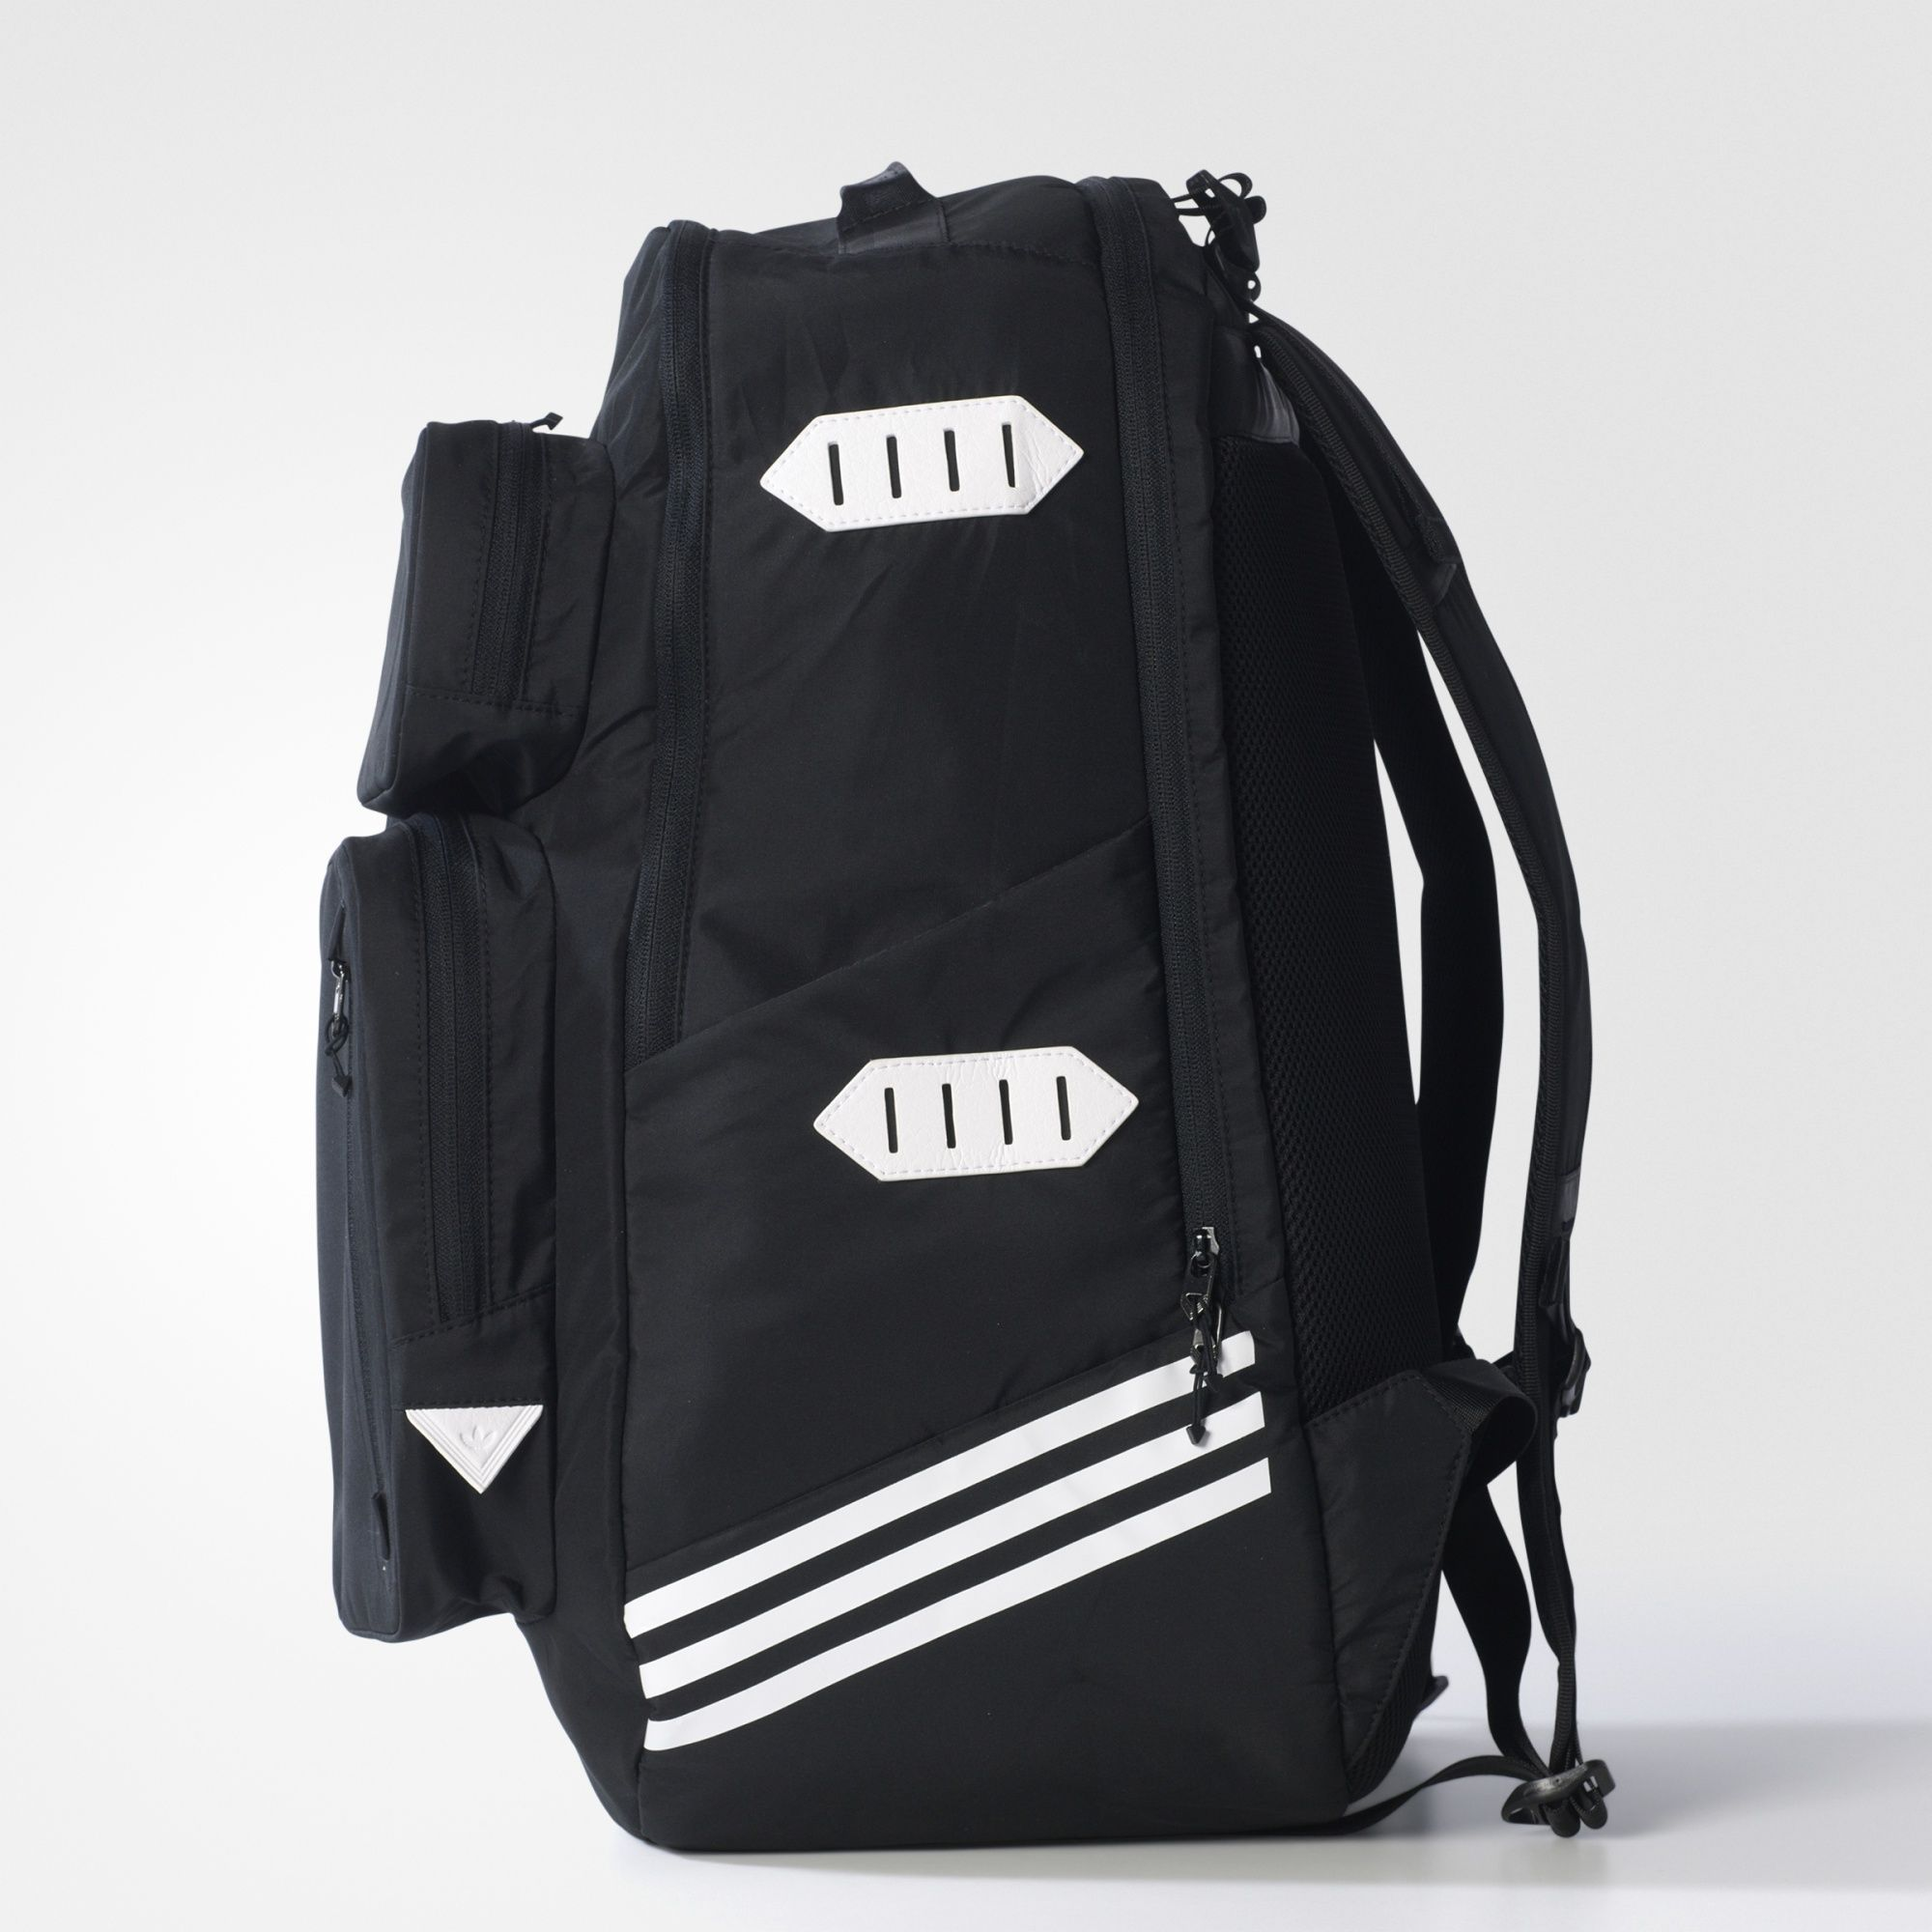 4c9245d7c3 White Mountaineering Adidas Backpack- Fenix Toulouse Handball